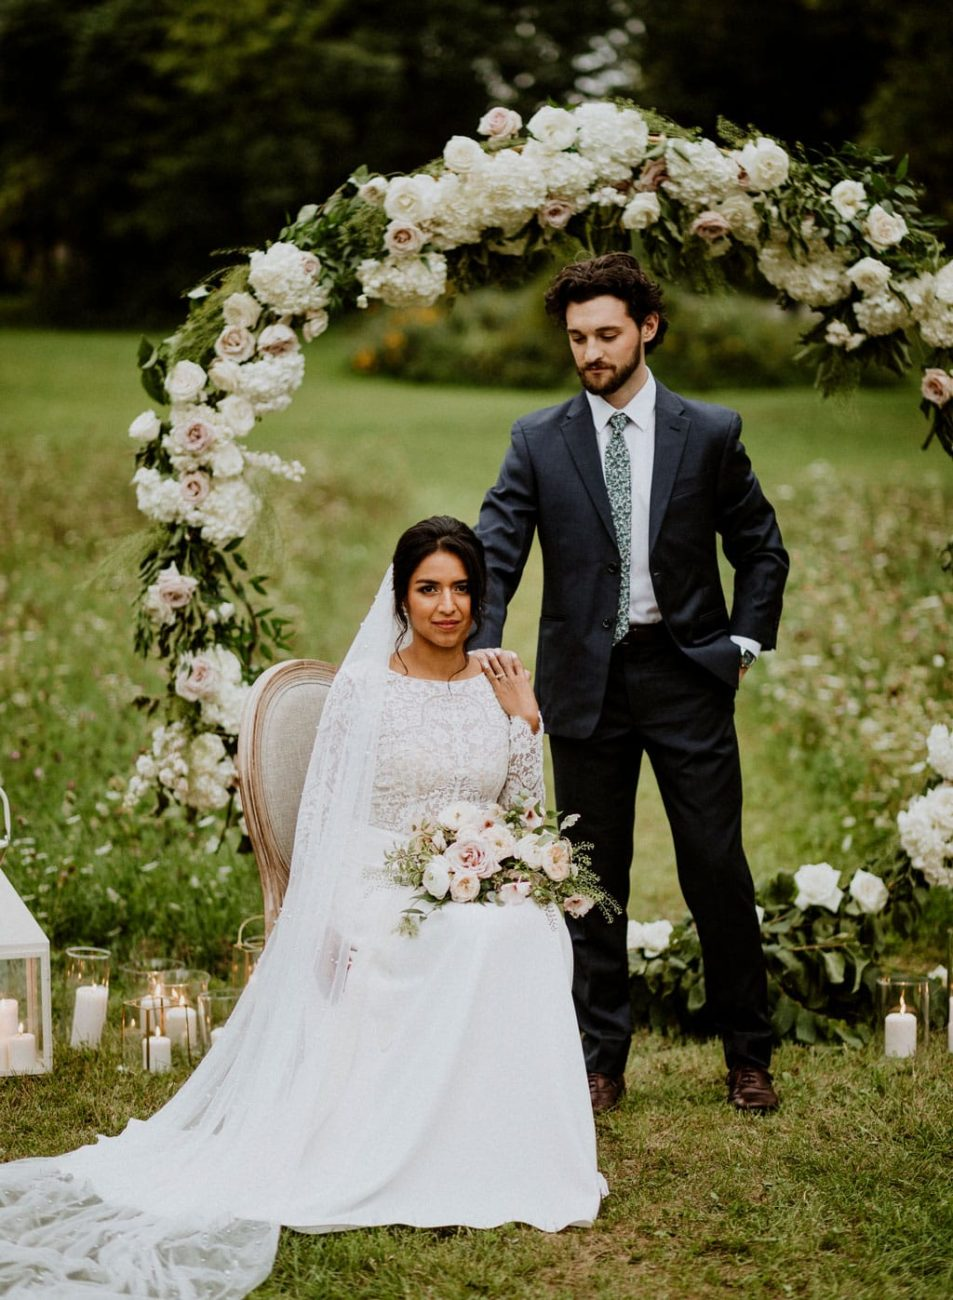 A bride sitting and groom standing beside her in front of large flower arch behind them, in a field